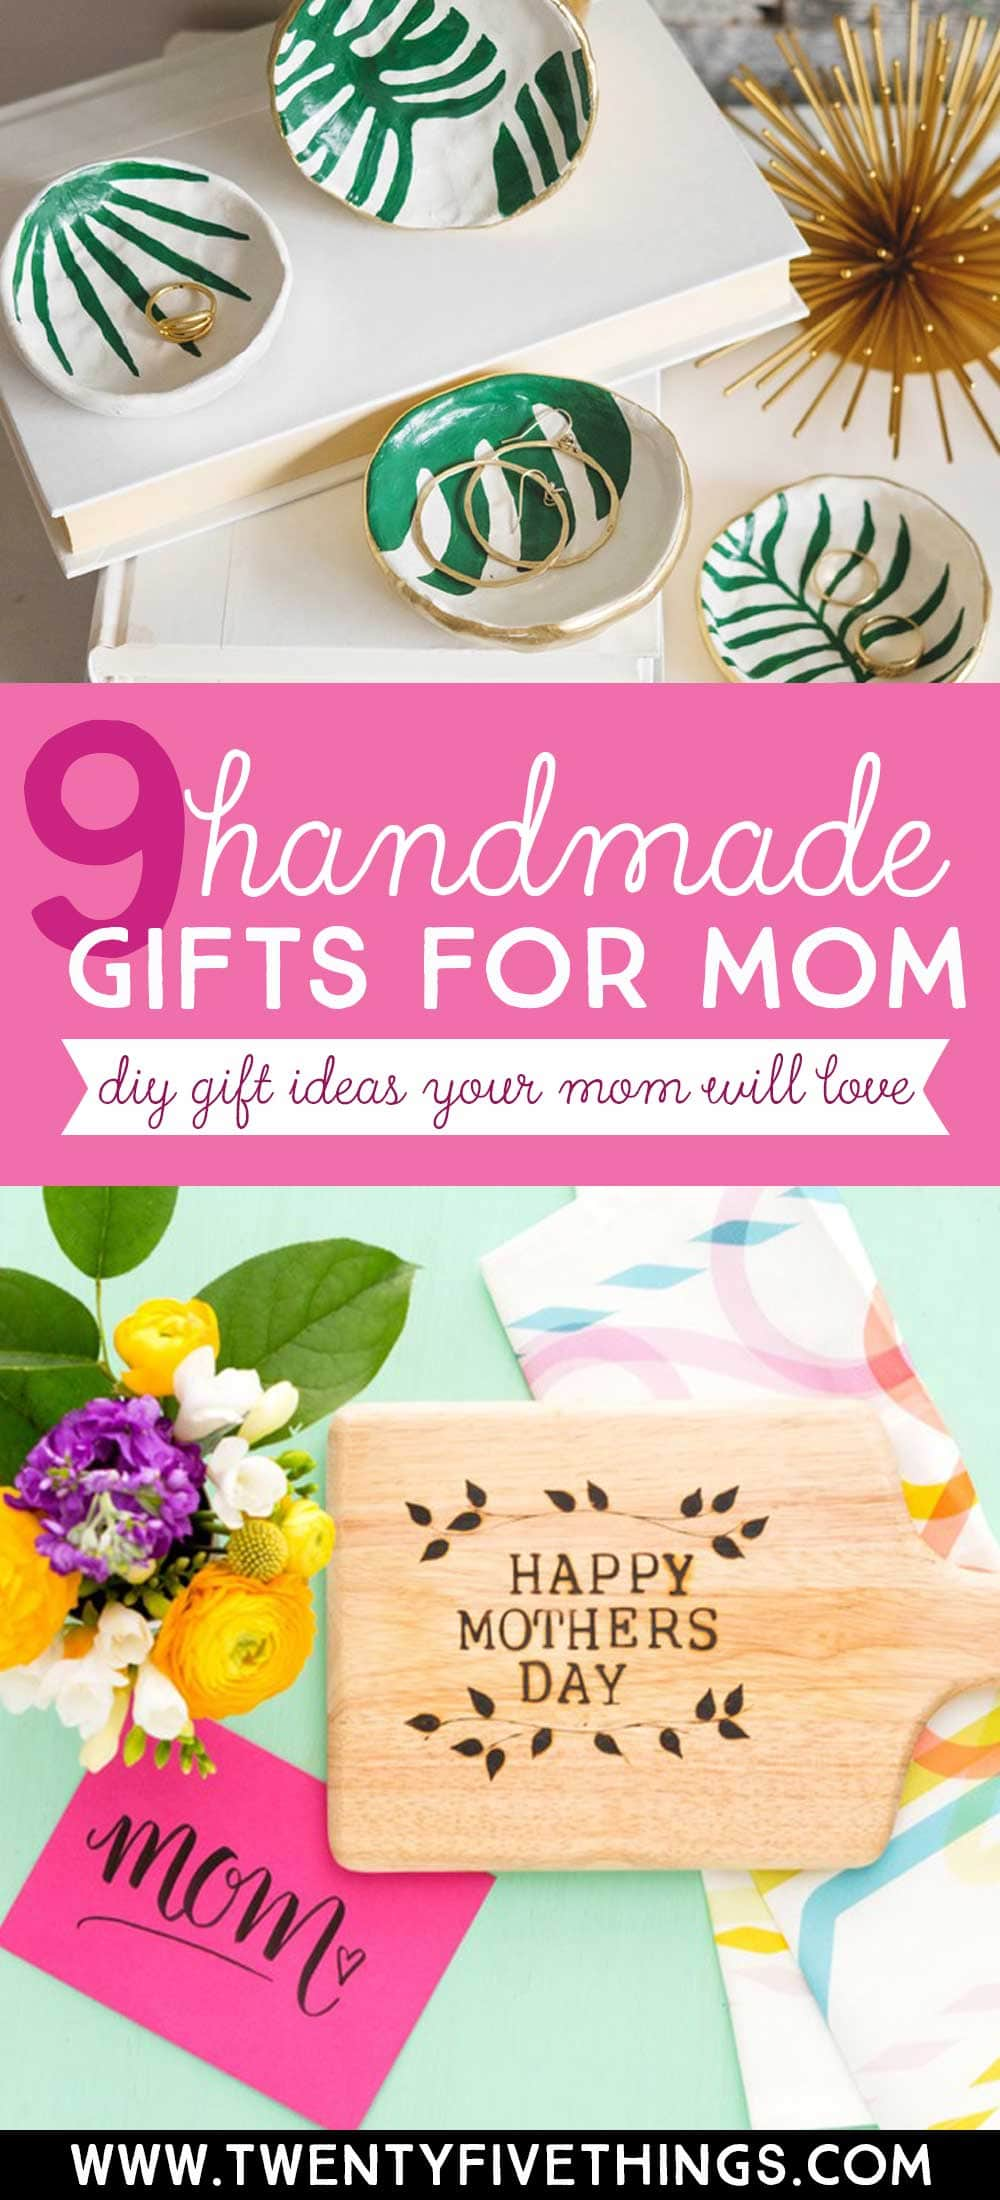 9 handmade gift ideas for mother's day